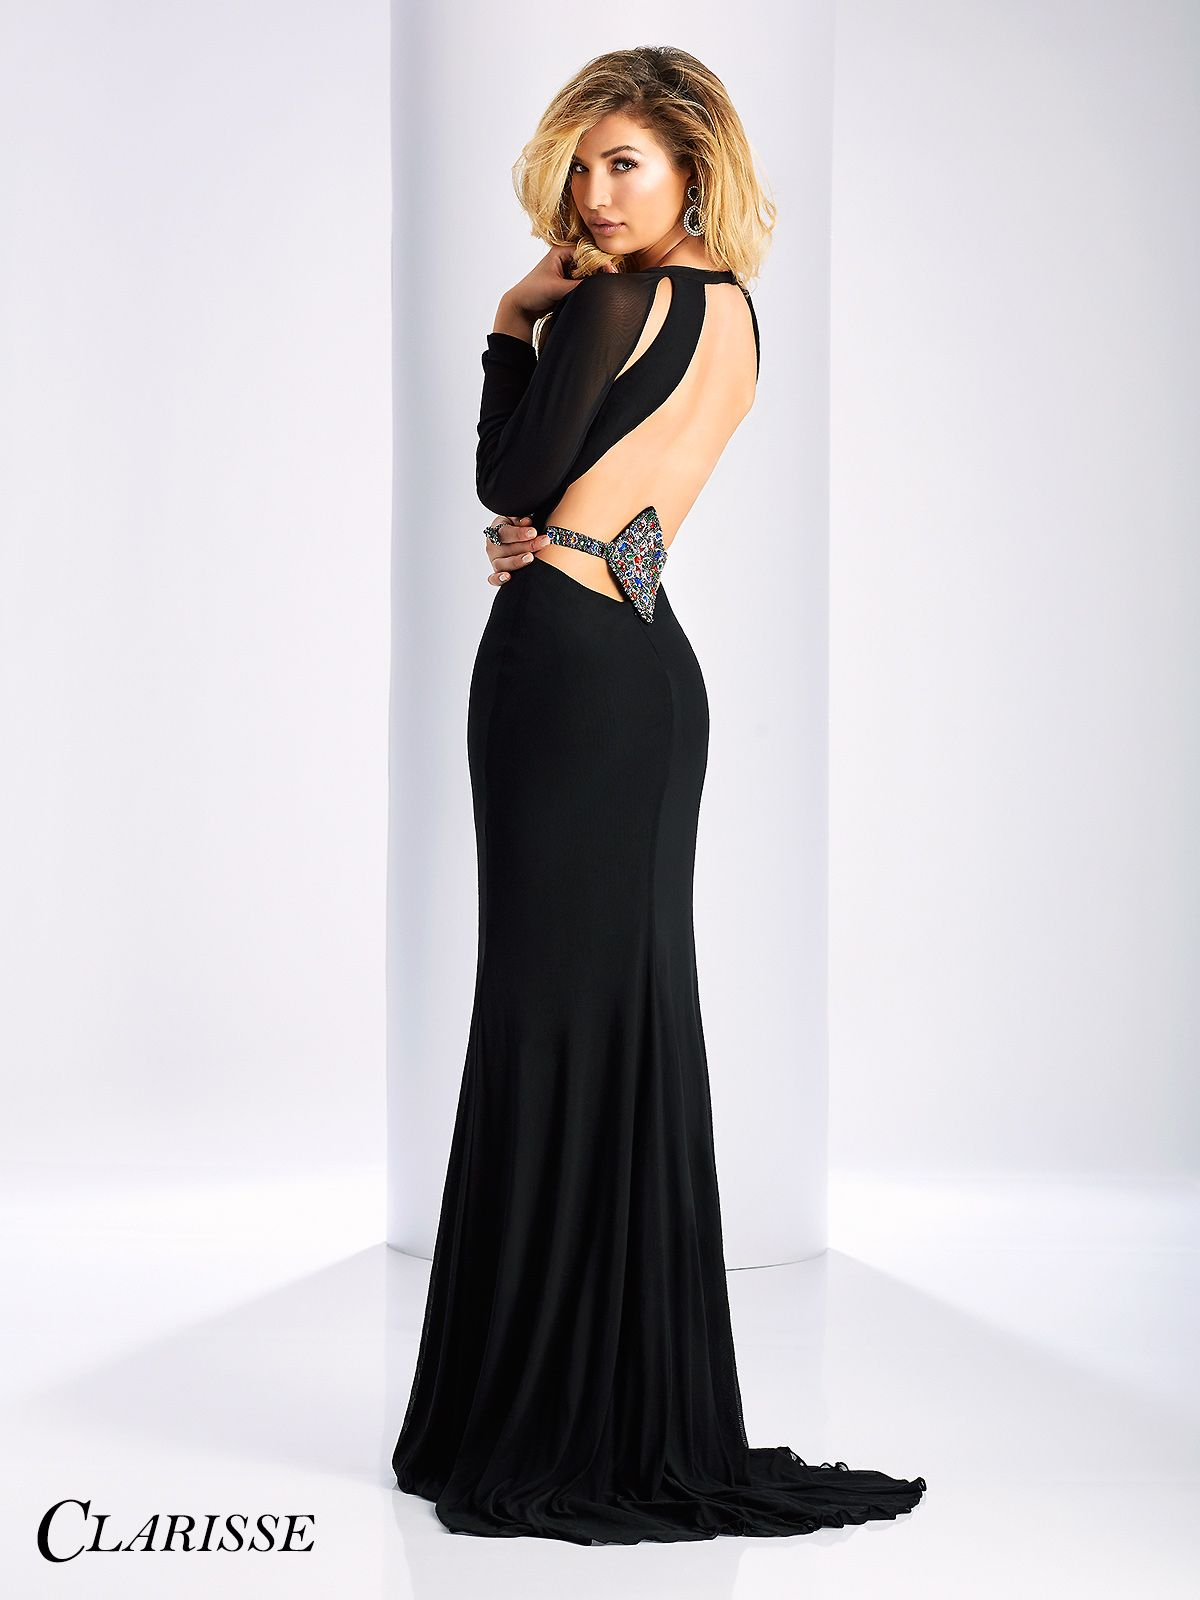 dcafe613593 Clarisse Prom Dress 3107. Long sleeve simple dress with cutouts